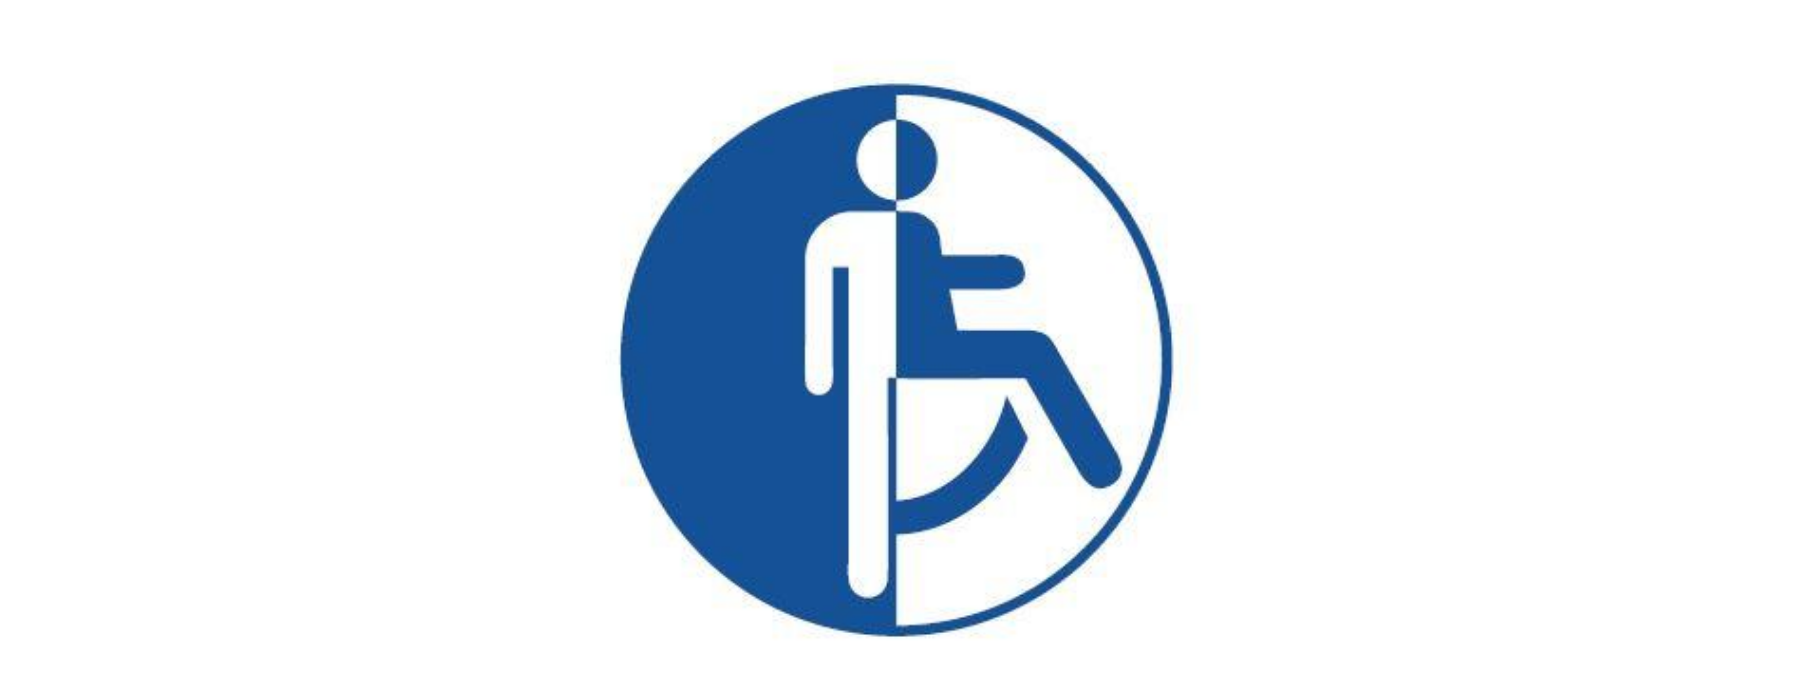 P/C+S/P+Other Services Disability 1800 x 680